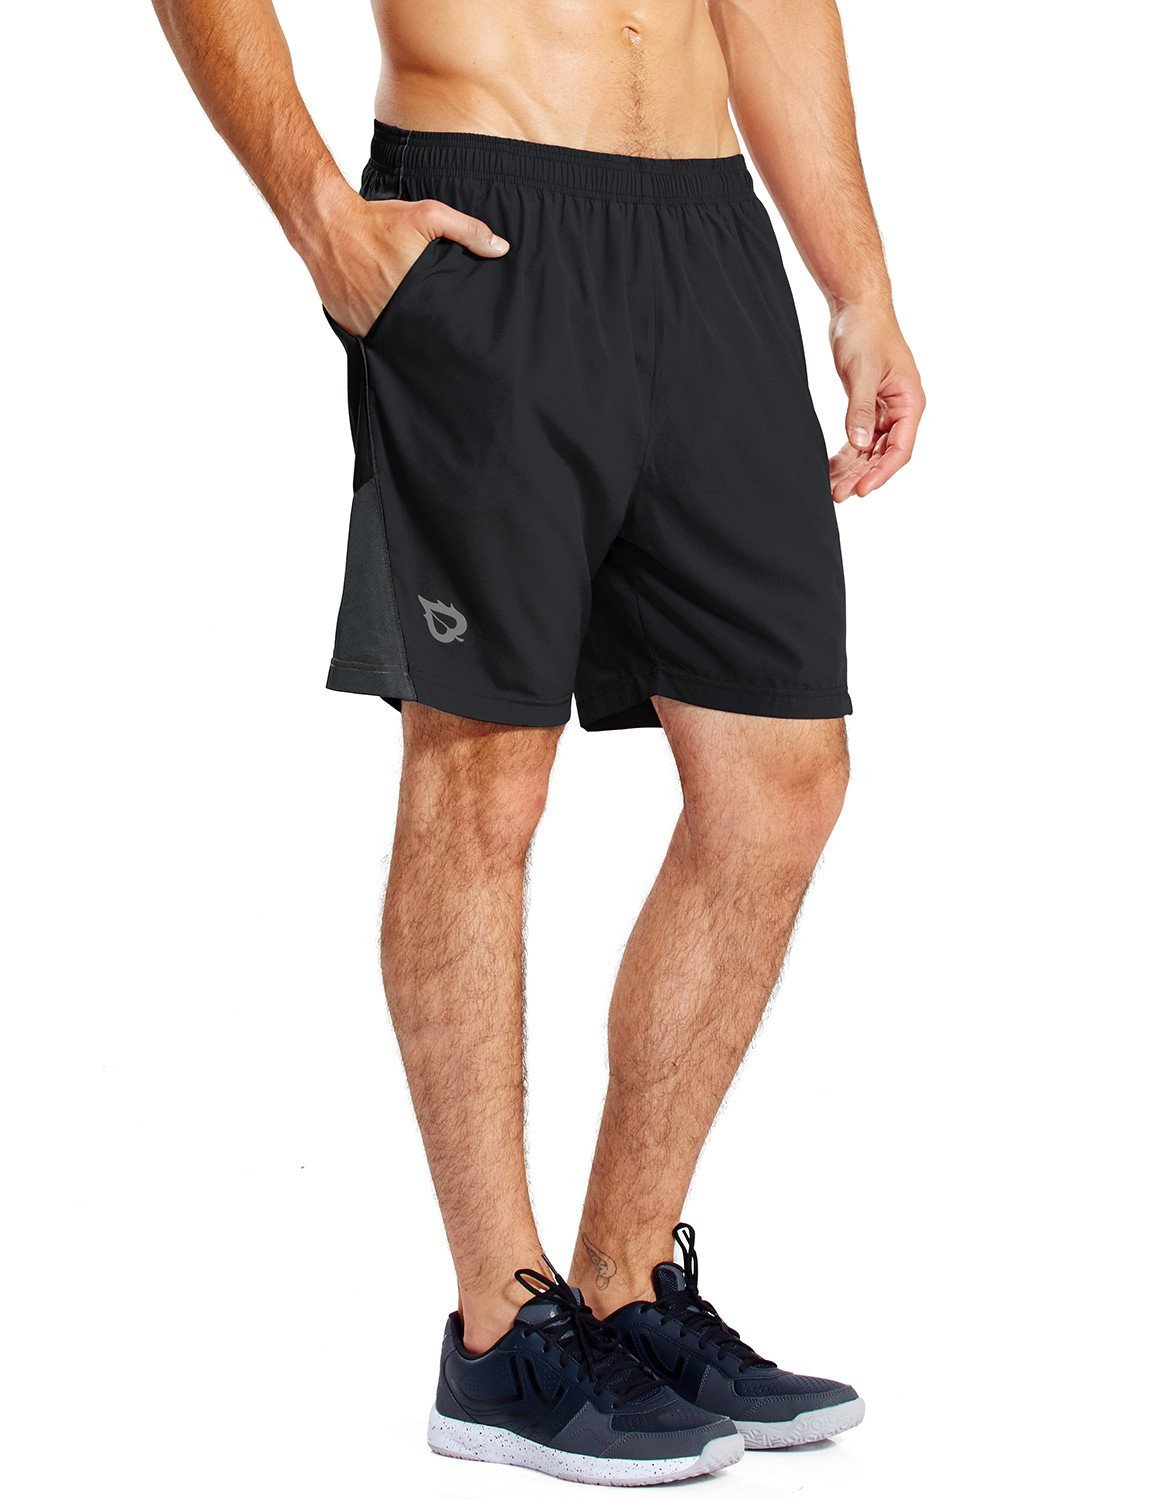 BALEAF Men's 7'' Quick Dry Workout Running Shorts Mesh Liner Zip Pockets Black Size M by BALEAF